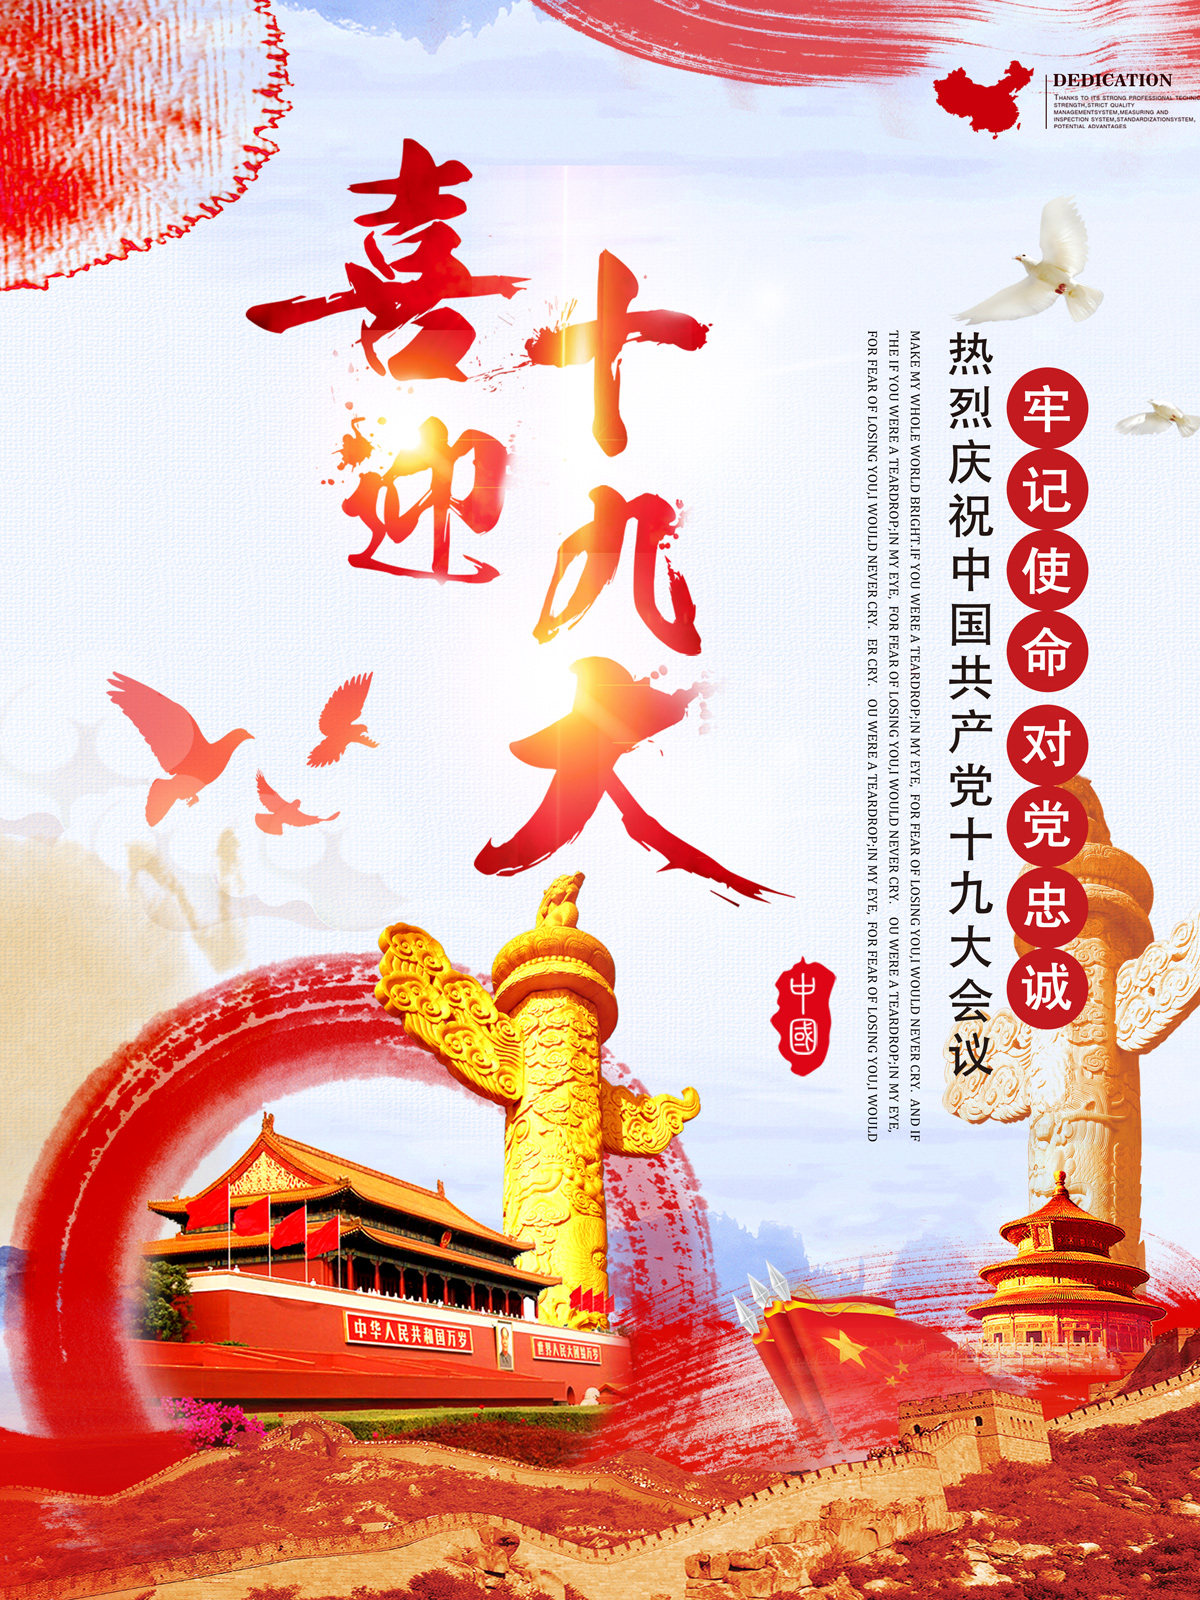 19th National Congress of the Communist Party of China - PSD File Free Download #.1